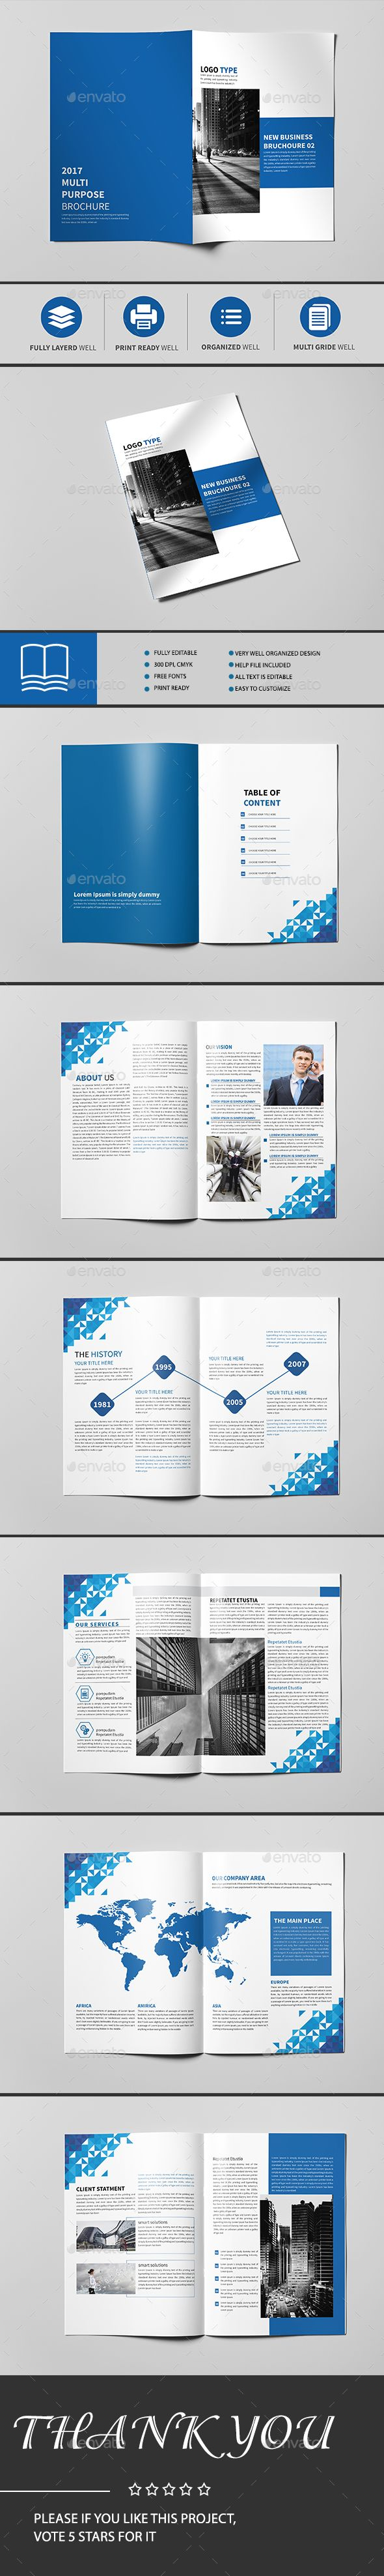 Annual Report Brochure 14 Page Template InDesign INDD